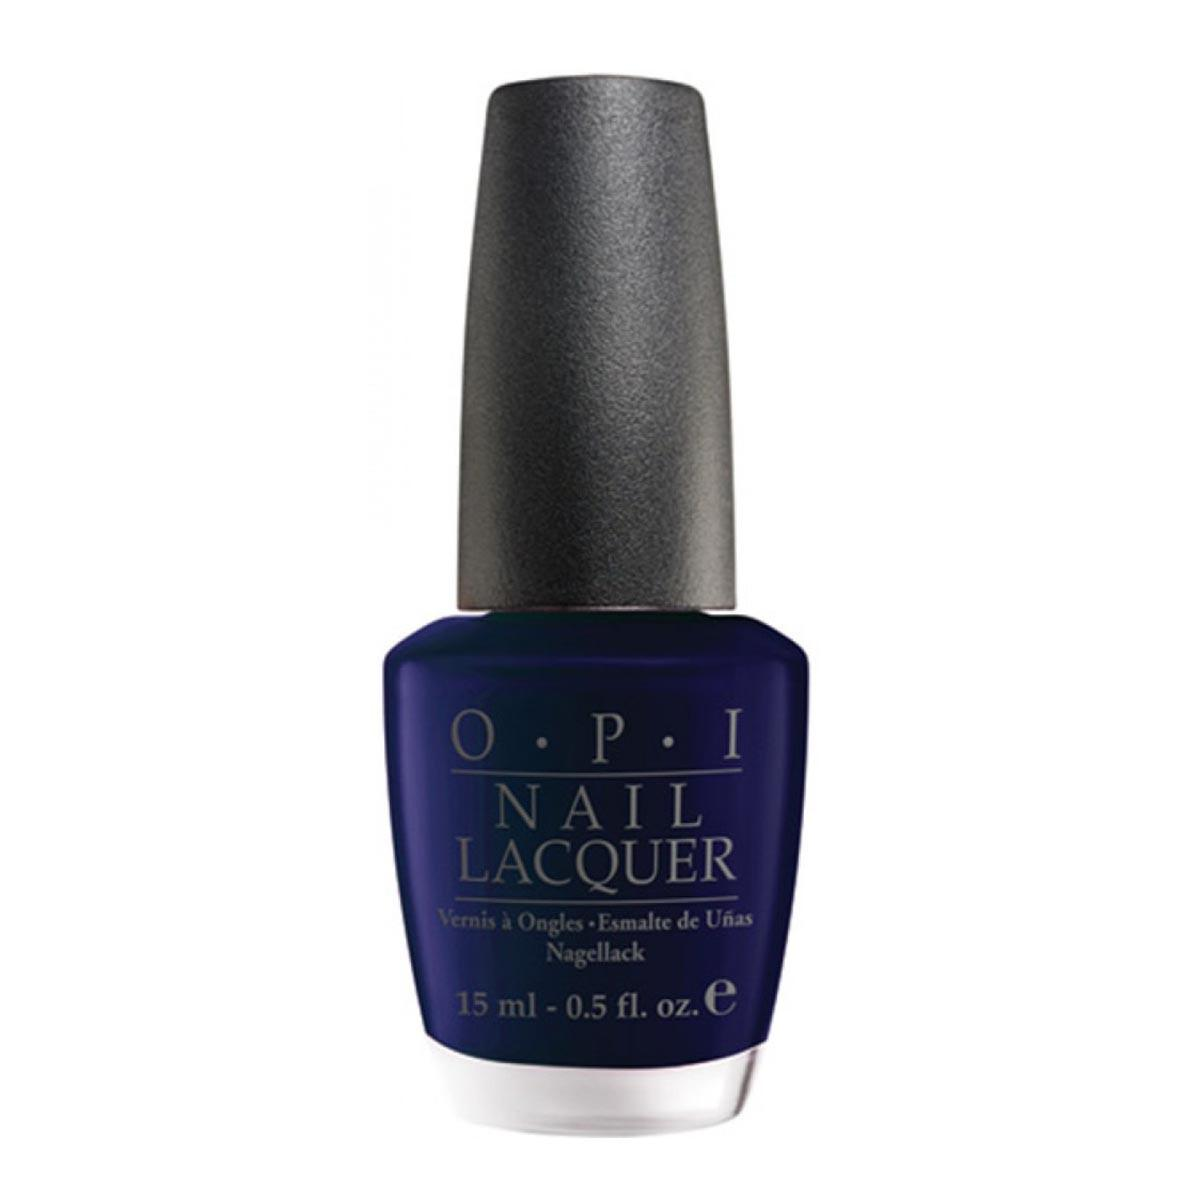 Opi Nail Lacquer Nli47 Yogata Get This Blue!